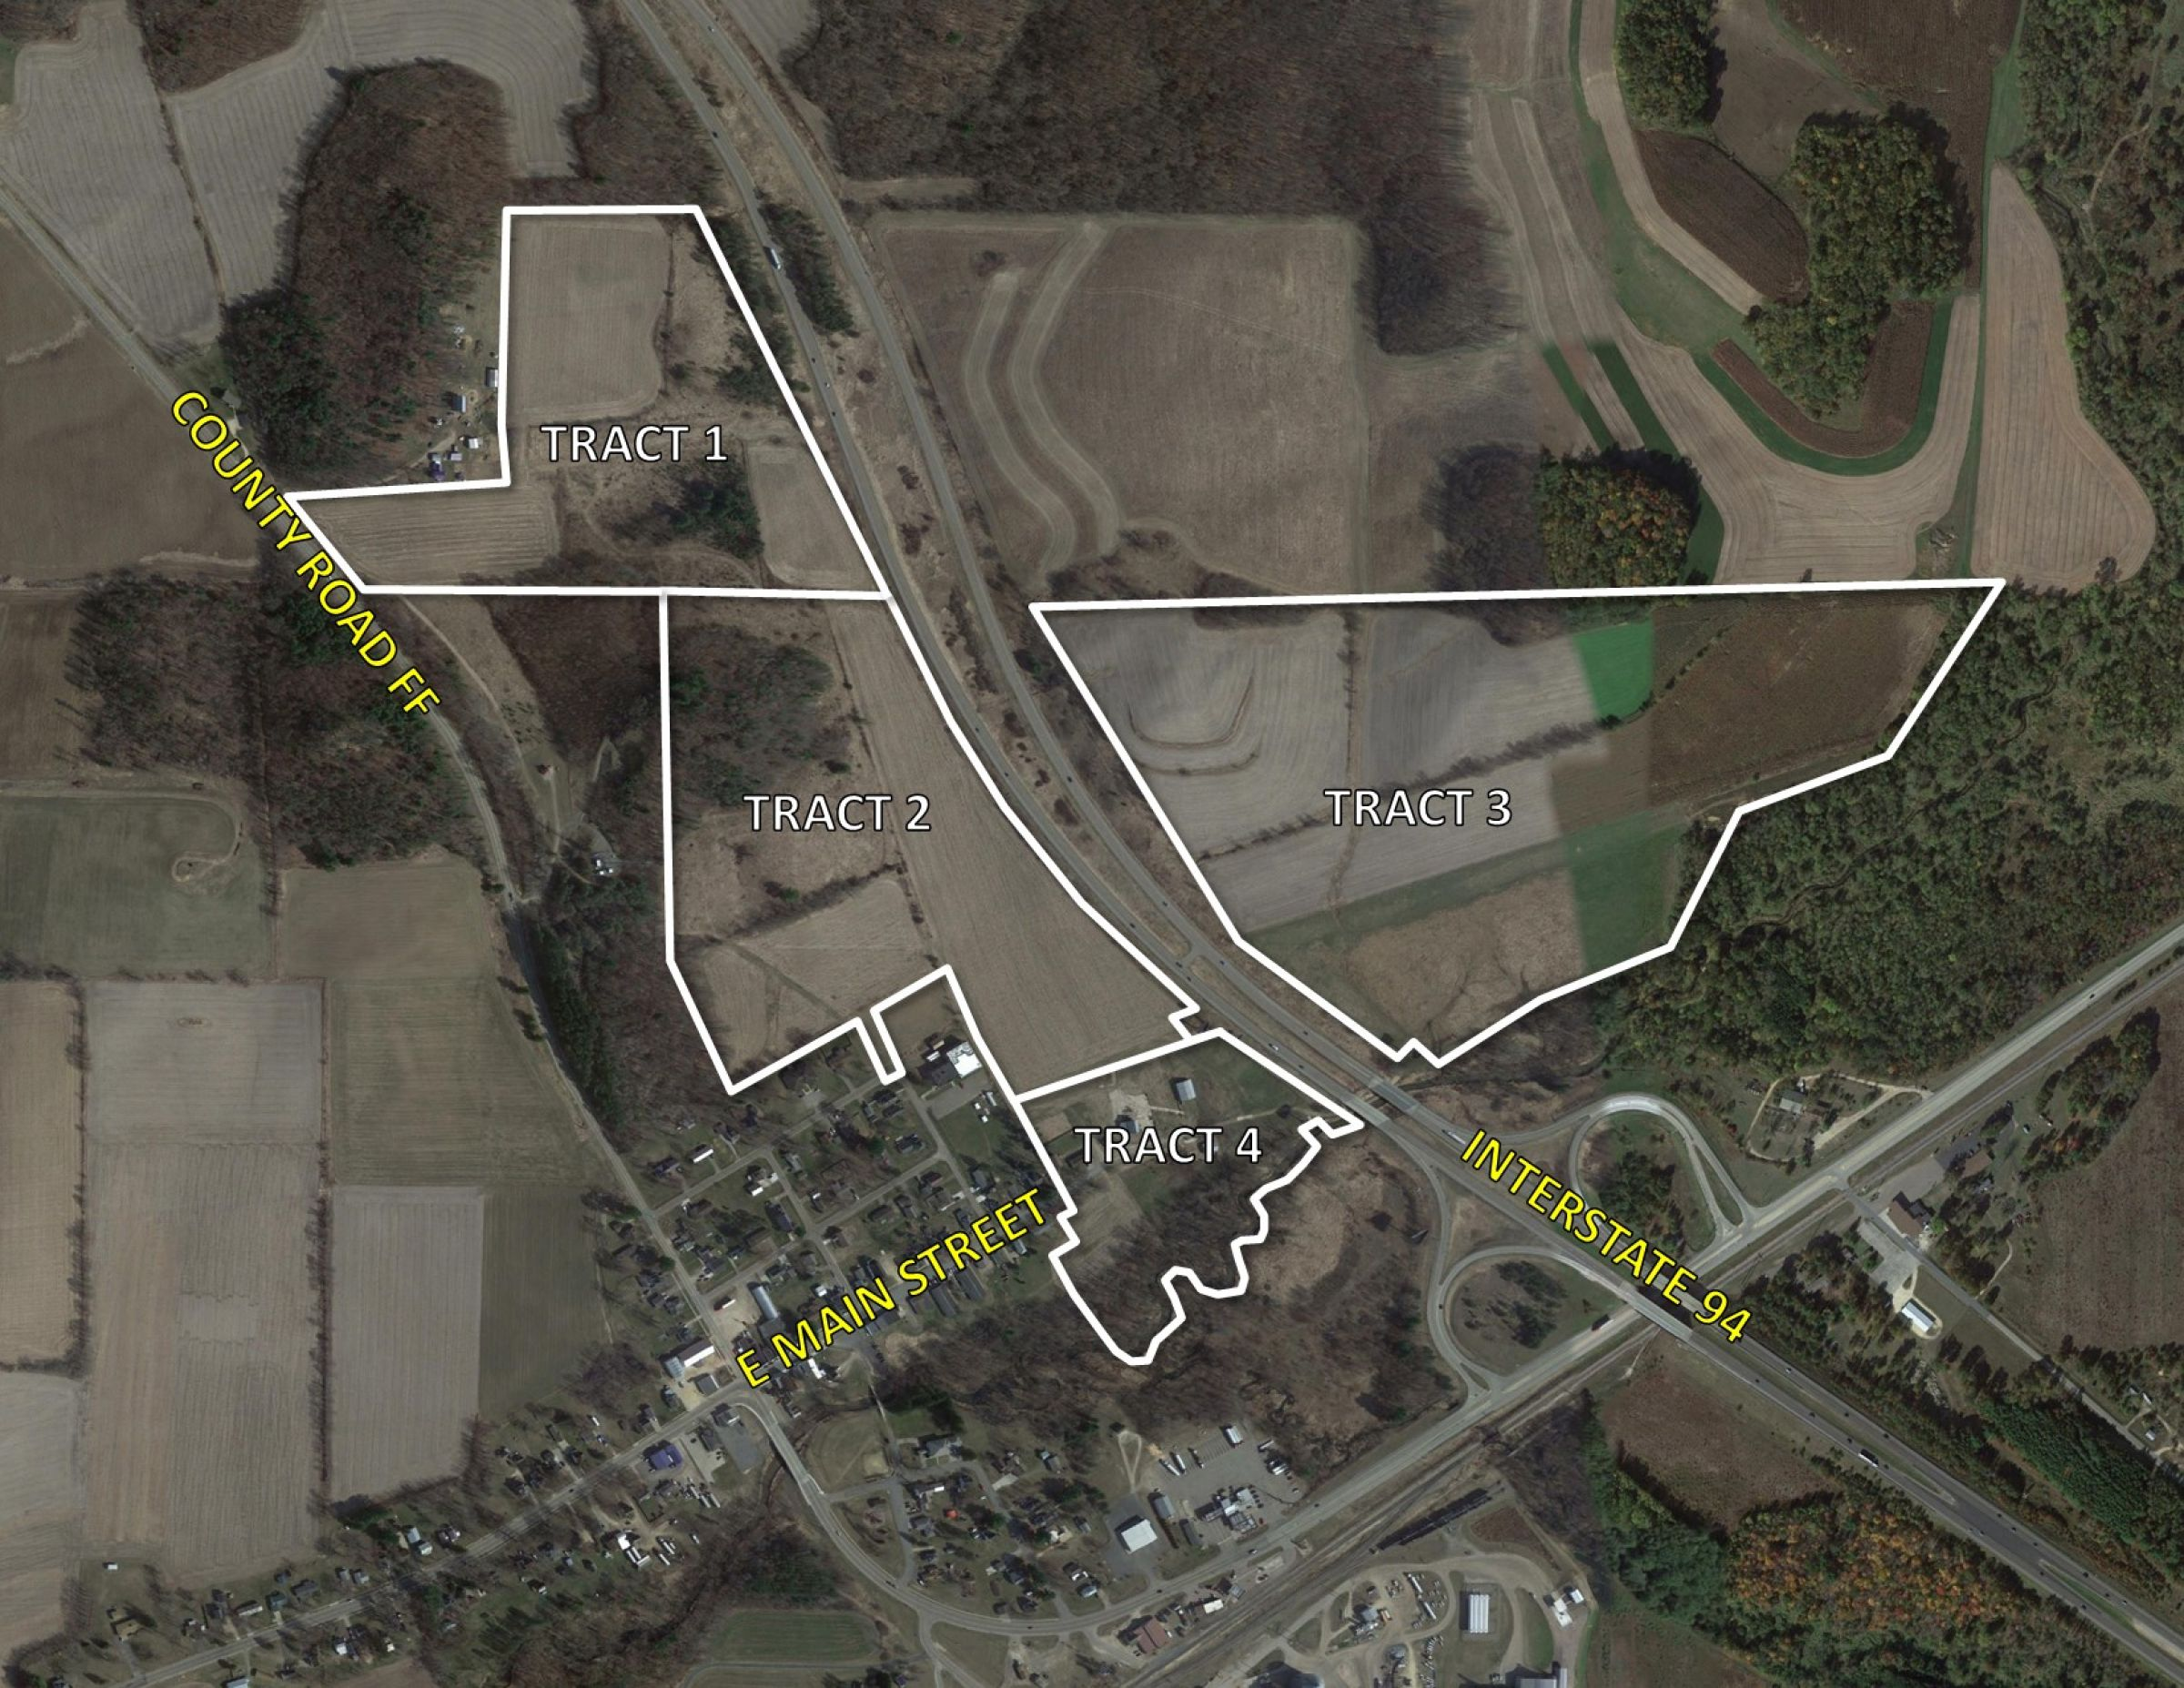 auctions-land-jackson-county-wisconsin-170-acres-listing-number-15737-0-2021-09-18-204648.jpg